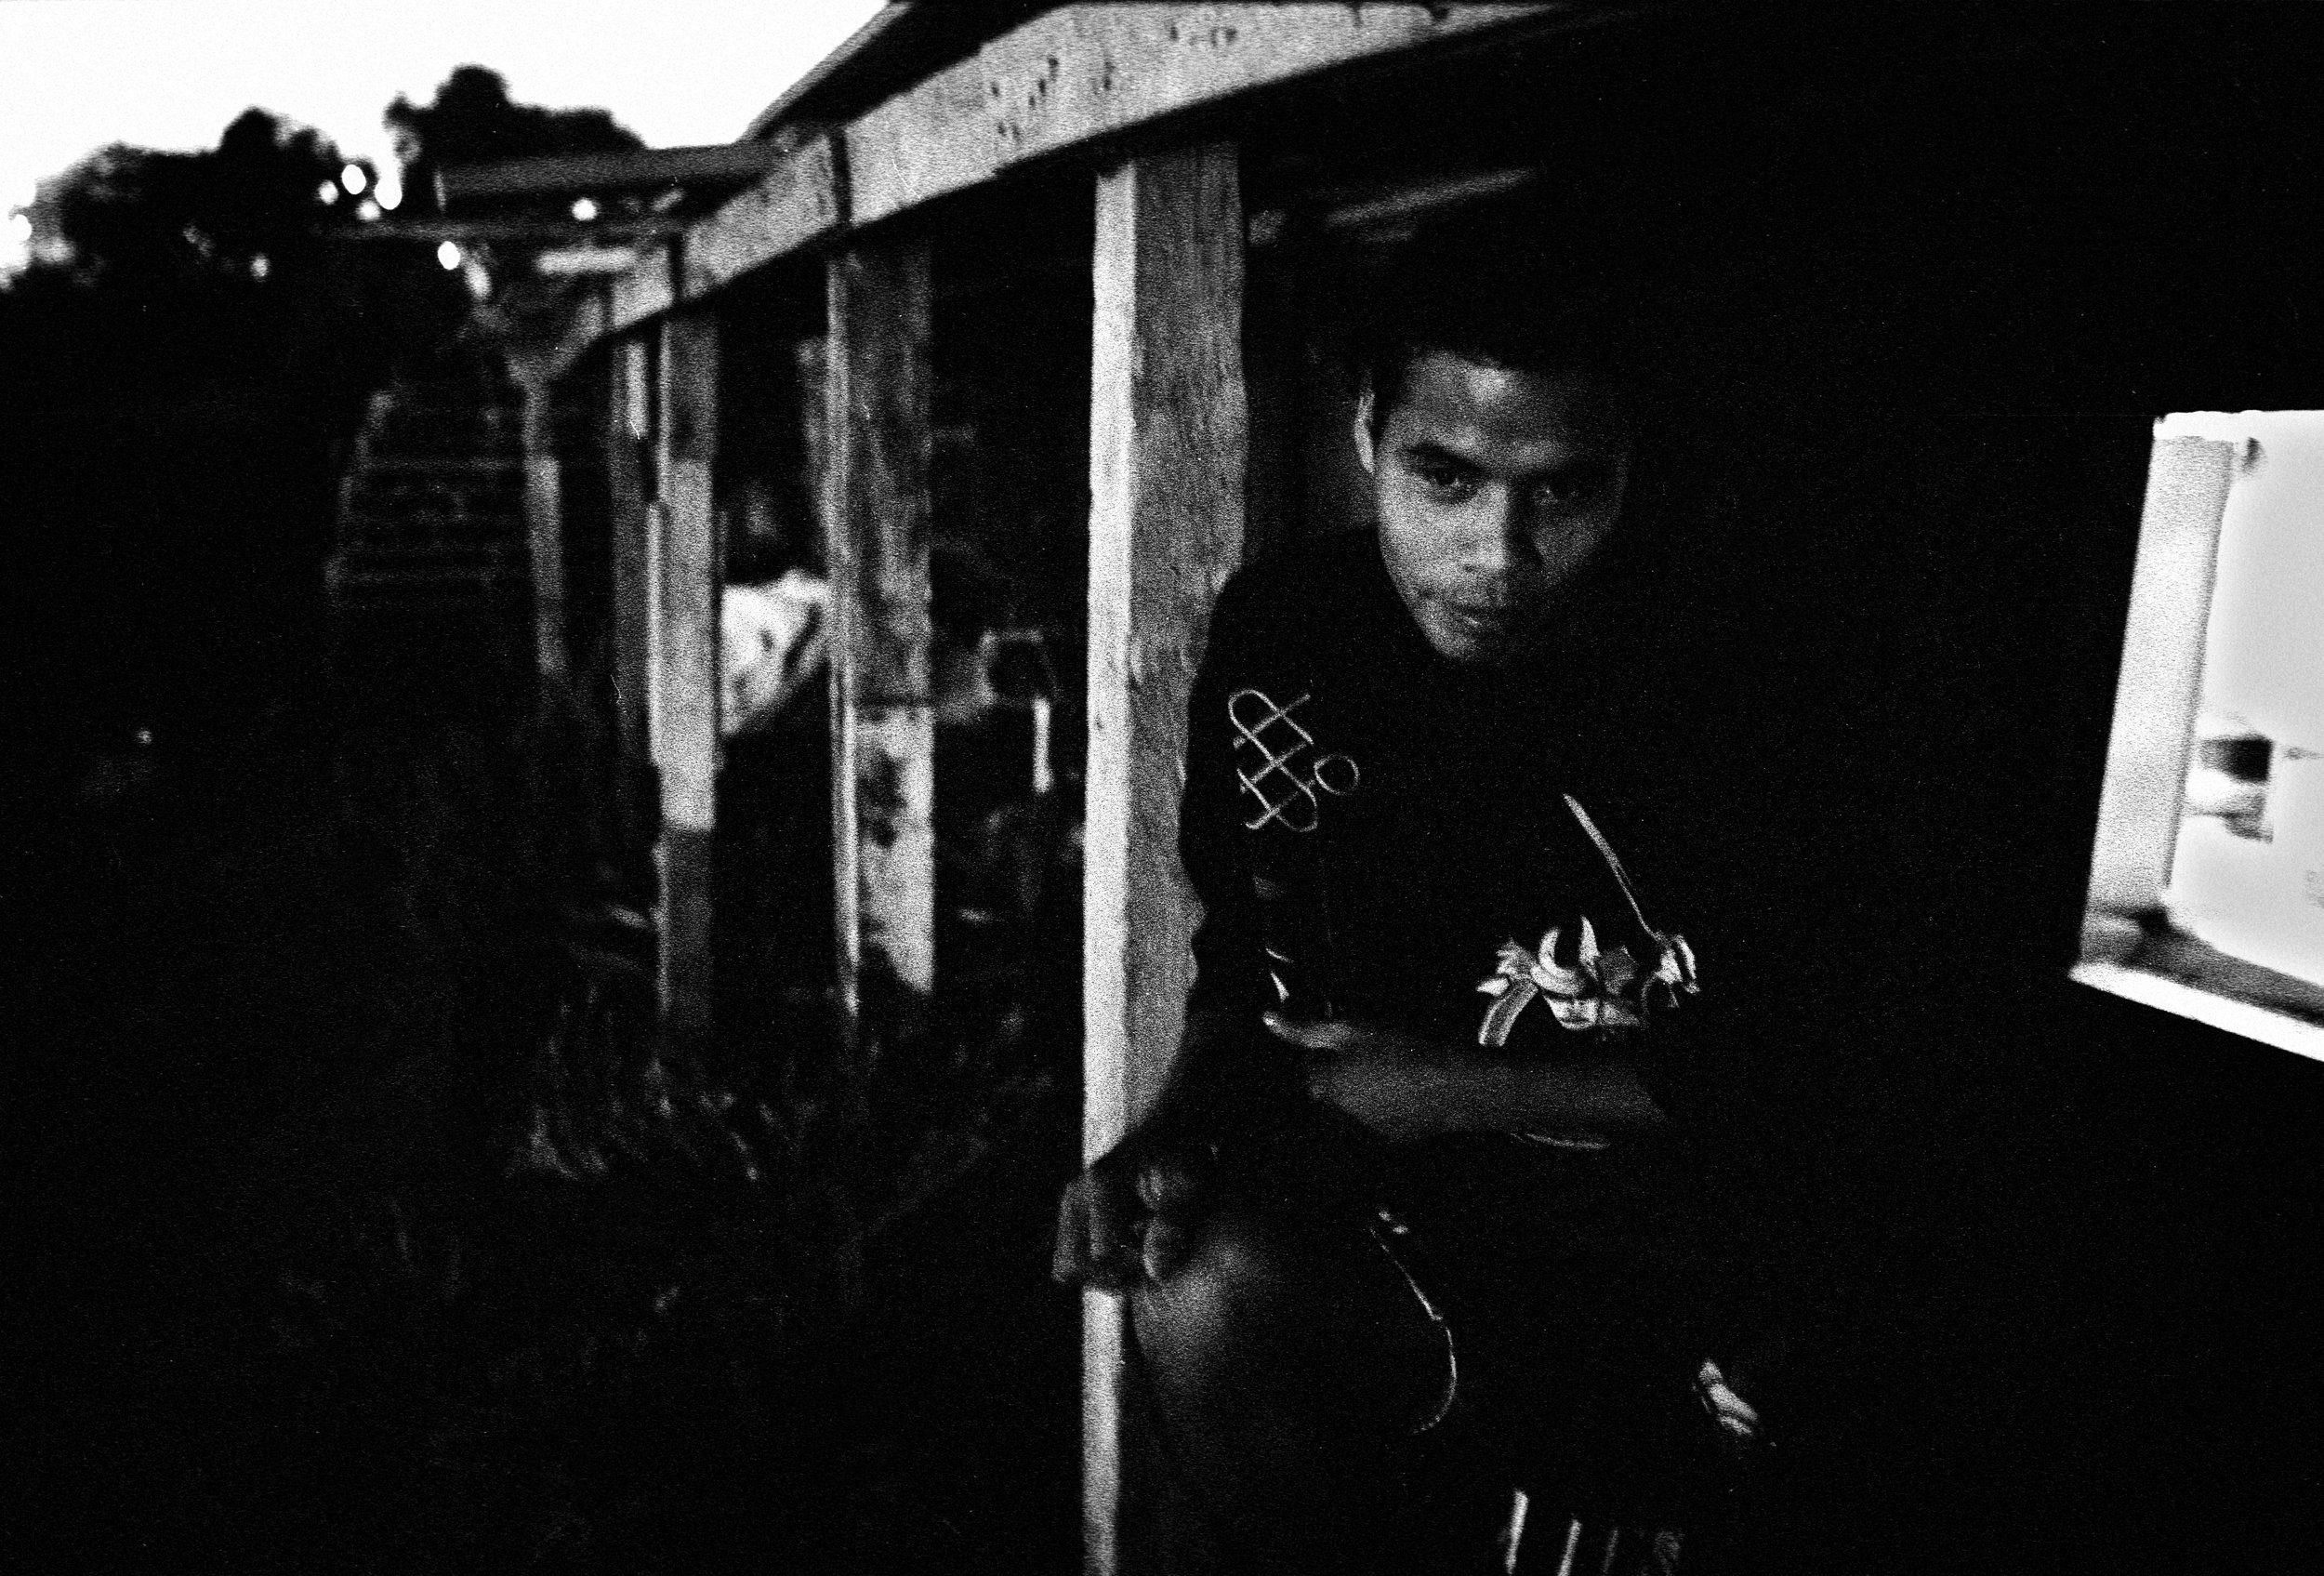 "Jesus Ruiz pictured on his porch in the Nueva Esperanza slum. He and his family, migrated from Mexcaltitan, a tiny island off Mexico's Pacific coast. At 16, Ruiz settled with his family at the edge of the low-income community of Colonia Chilpancingo in Tijuana, about a mile from the border. After assembling a home from wood and cardboard scraps, the Ruiz family found work at the factories. Soon the area was solid with shacks as Mexico's poor and jobless arrived seeking work. He has managed steady factory work and says that his current job, making bandages and IV bags at the US-owned Tyco International plant for $70 a week, is a good one. ""At least it's clean. I made auto parts before and my hair and face were caked with dirt."""